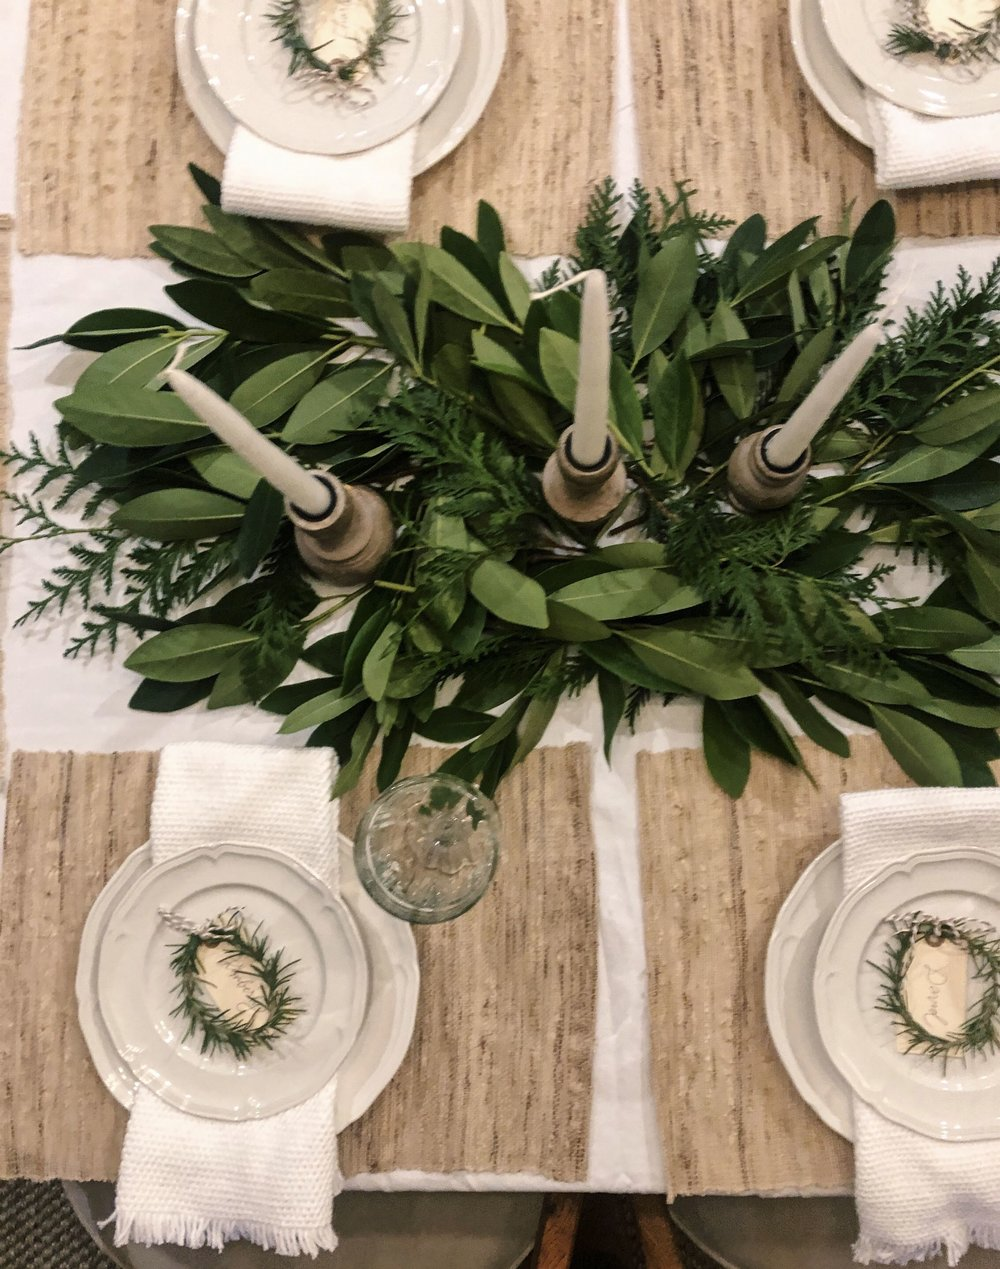 Kaylee used table decor my Mom already had around the house. I love the mix of natural and familiar elements she used, that all came together for a cozy meal.